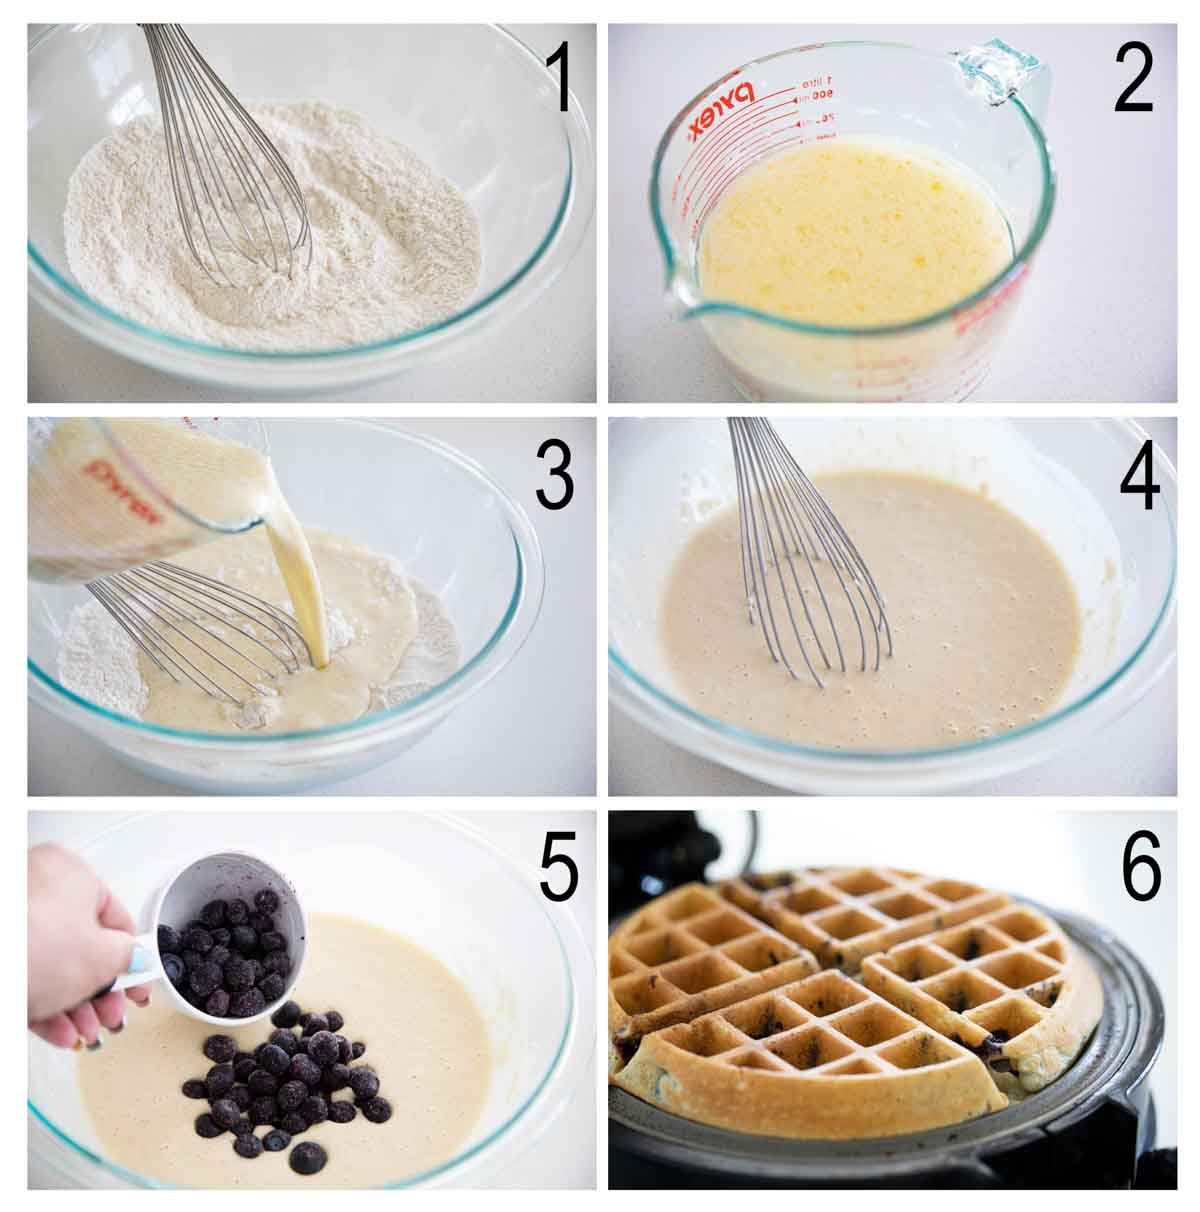 steps for making blueberry waffles